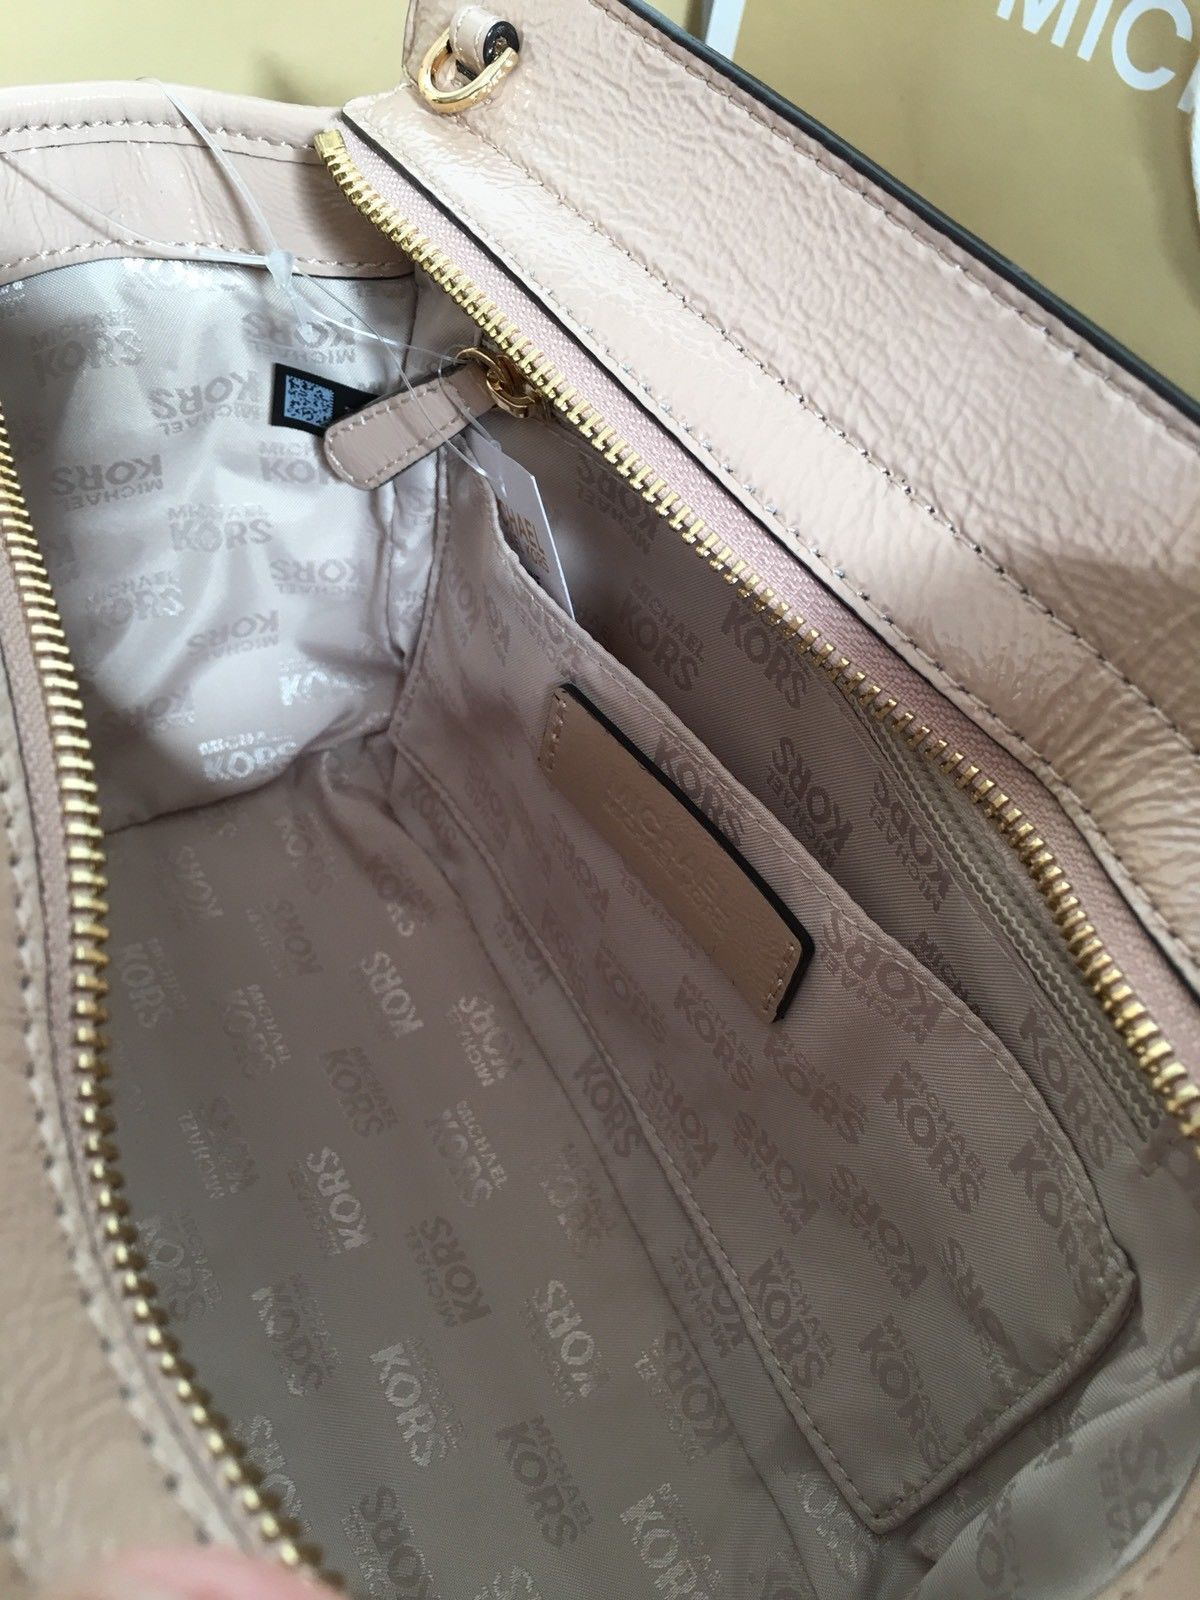 f41499a32c NWT Michael Kors VIVIANNE Quilted SM TZ Patent Leather Messenger Bag OYSTER   348